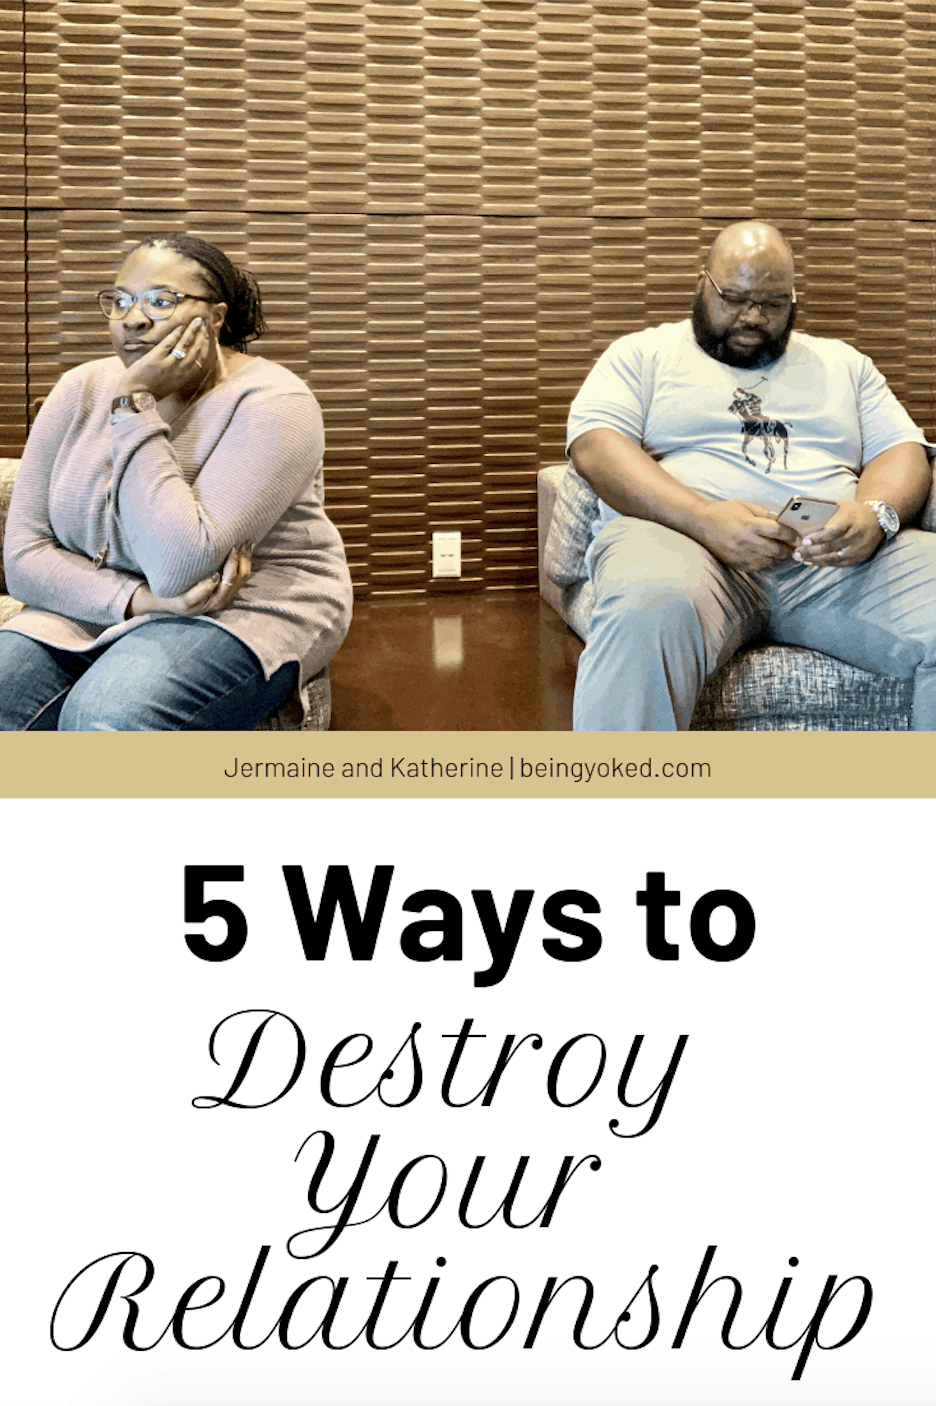 ways to destroy your relationship